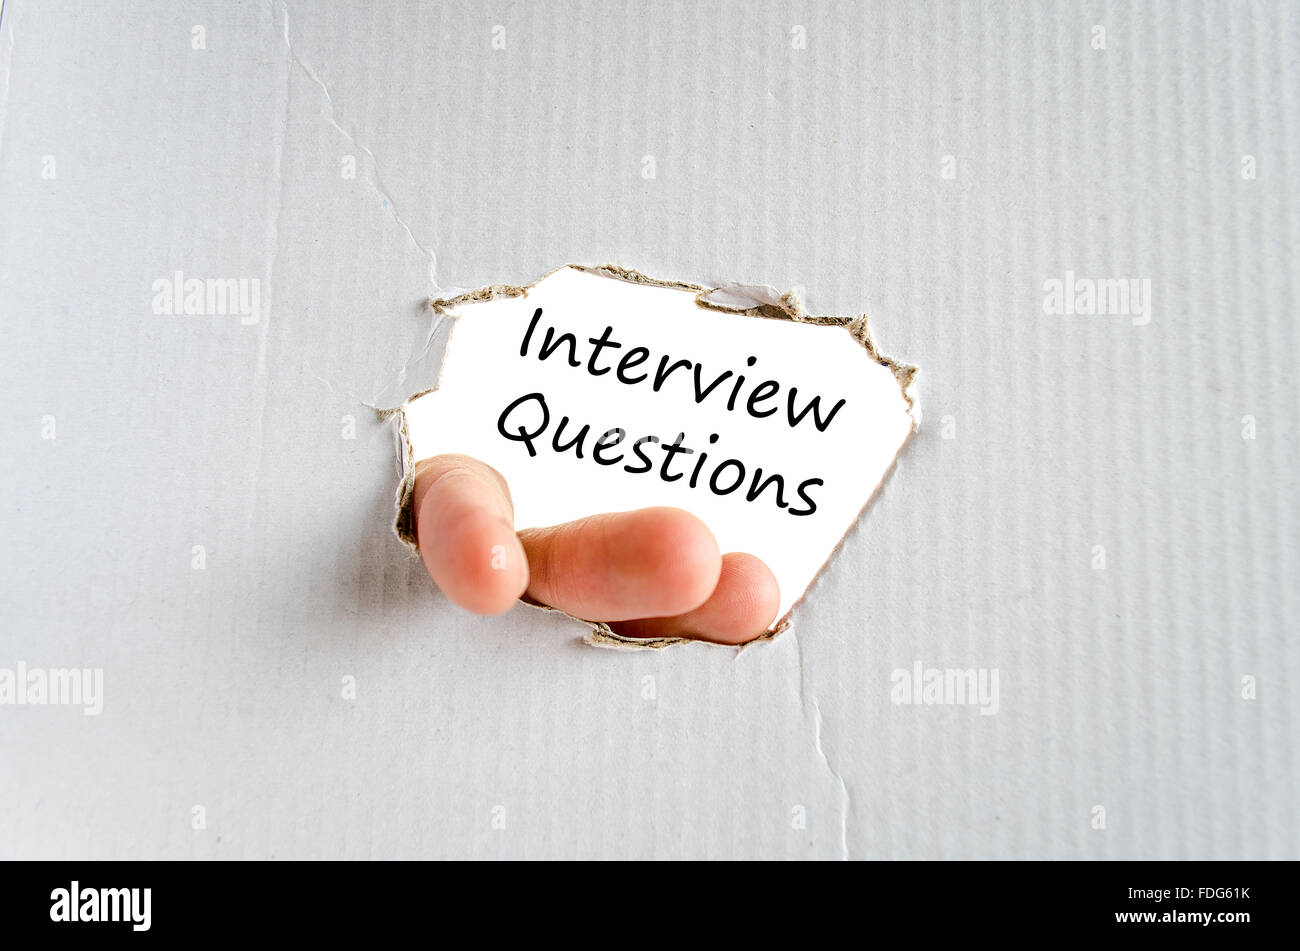 background interview questions